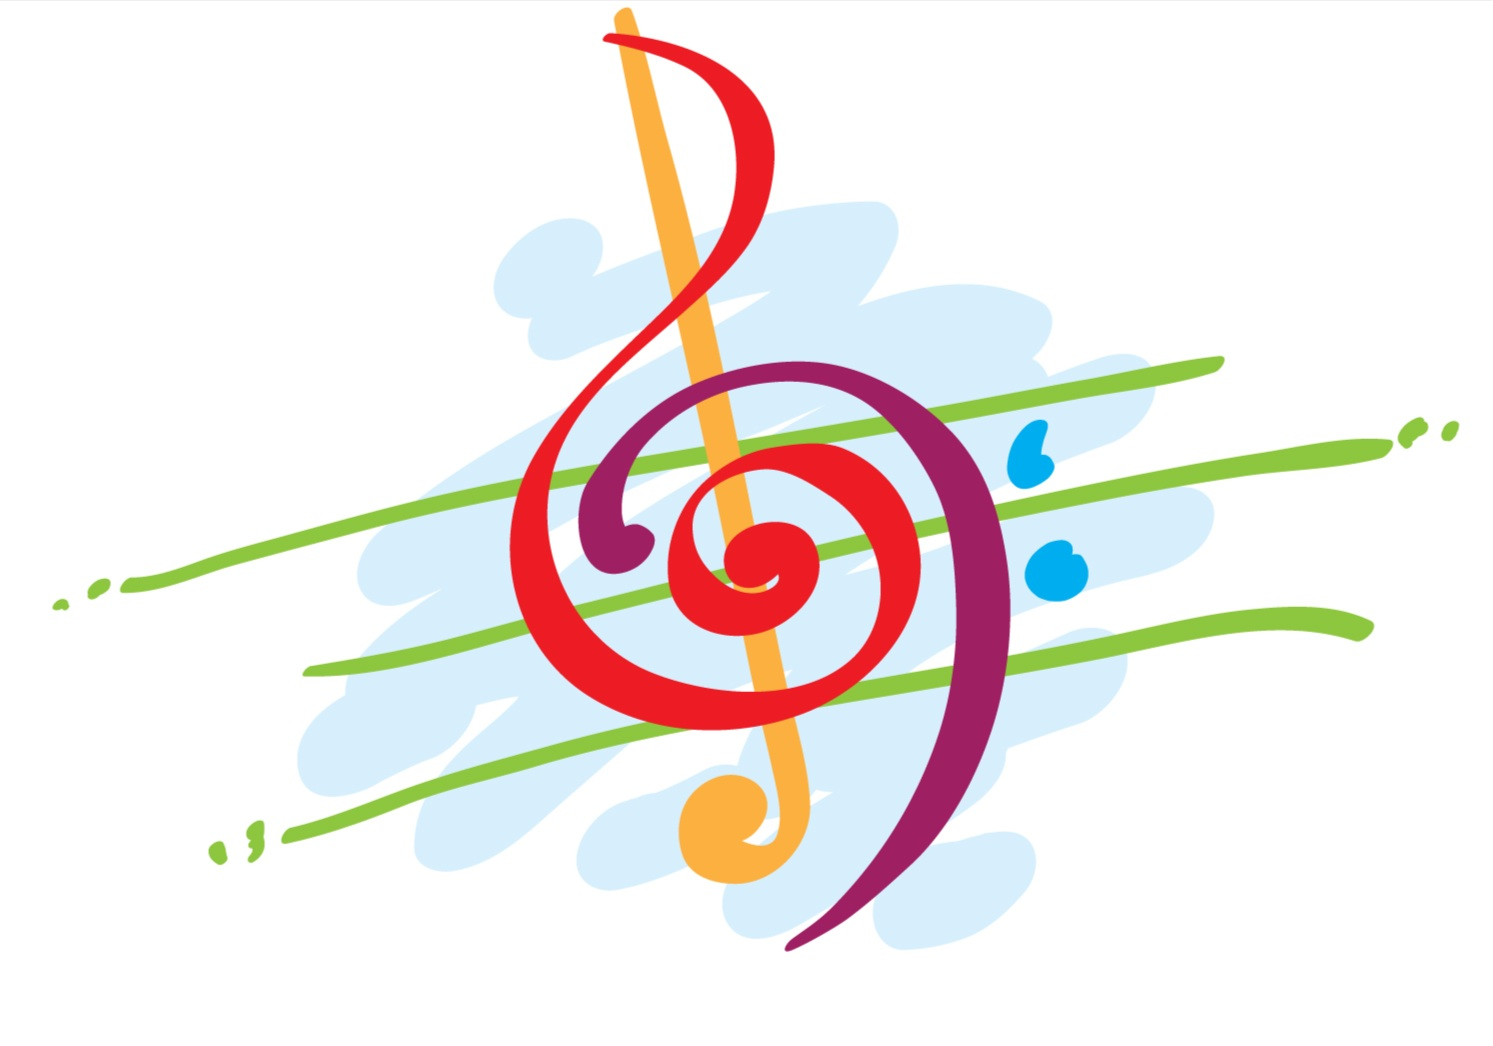 music emblems clipart - photo #19